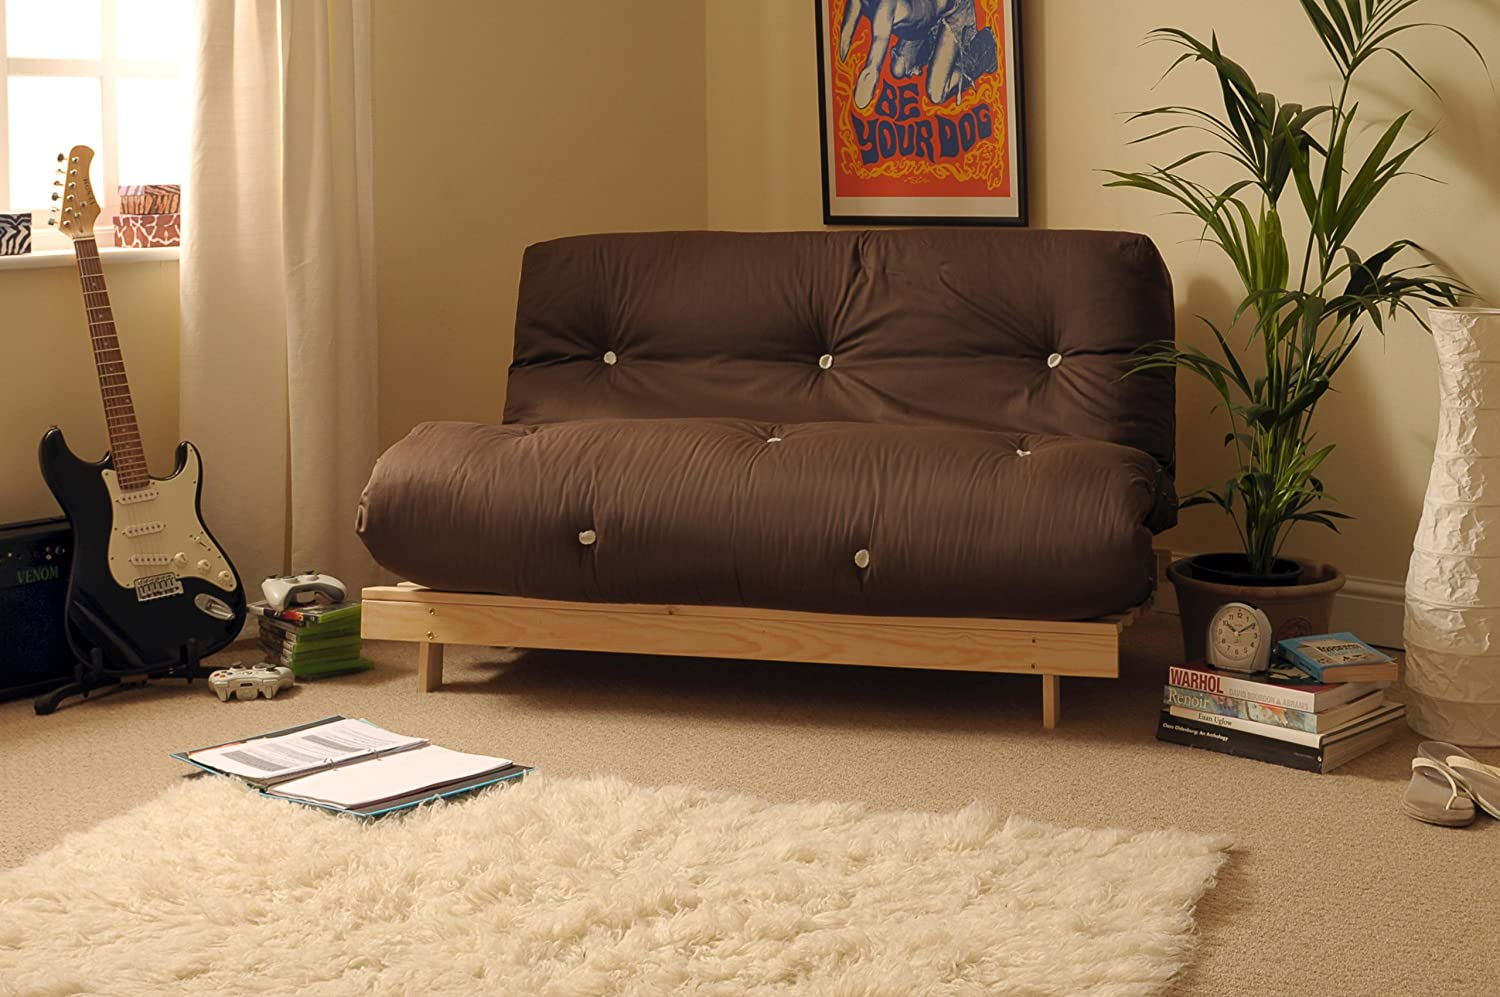 Comfy Living 4ft Small Double 120cm Wooden Futon Set CHOCOLATE Mattress